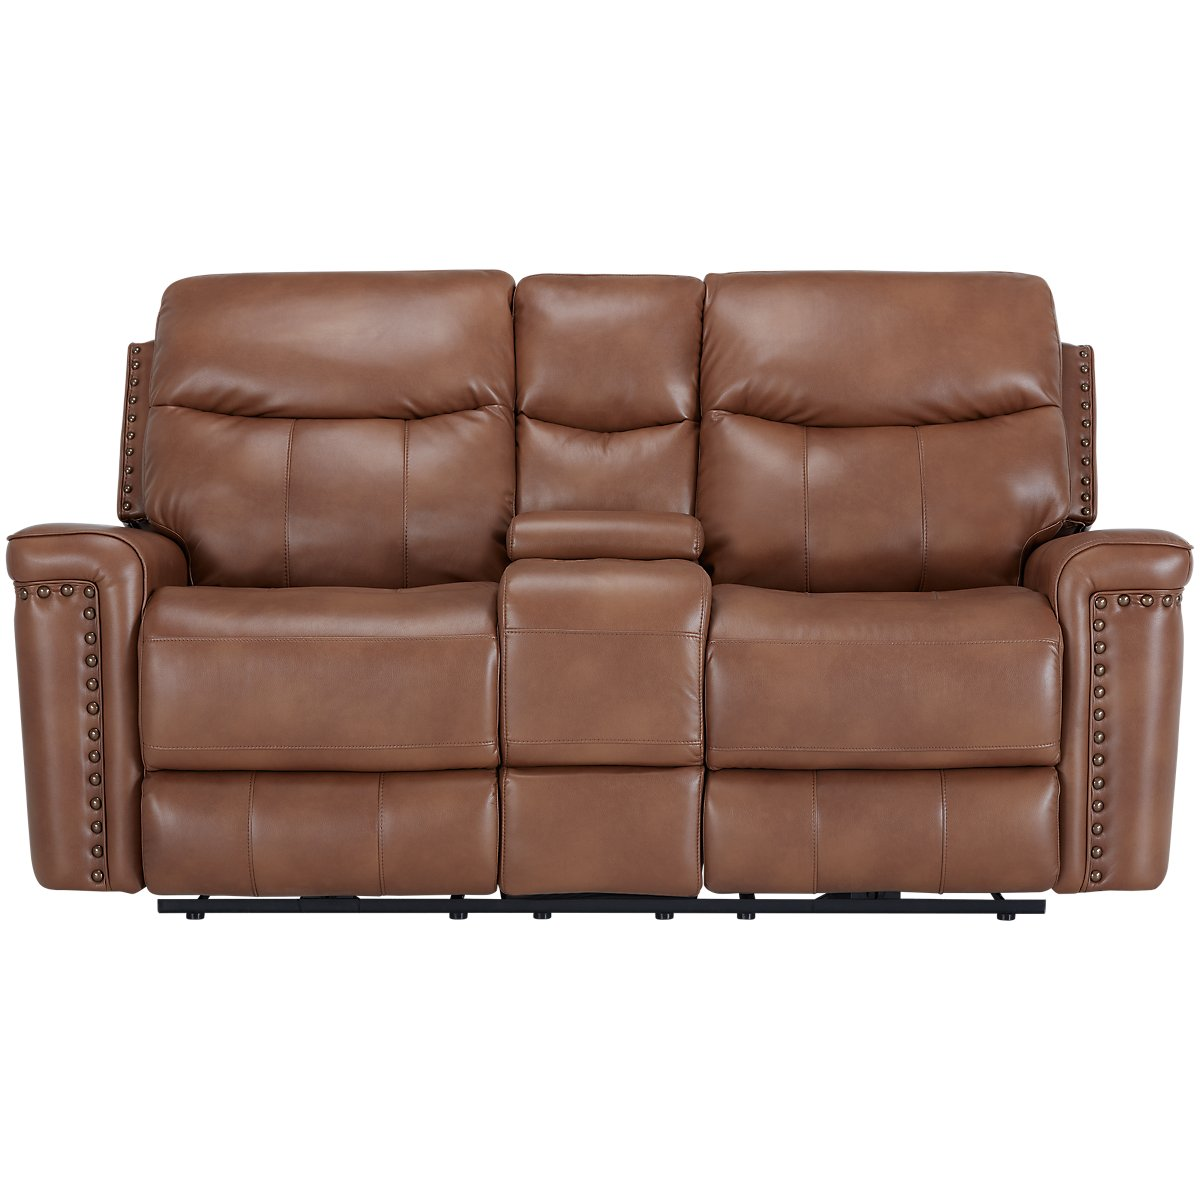 City furniture wallace medium brown microfiber reclining console loveseat Brown microfiber couch and loveseat